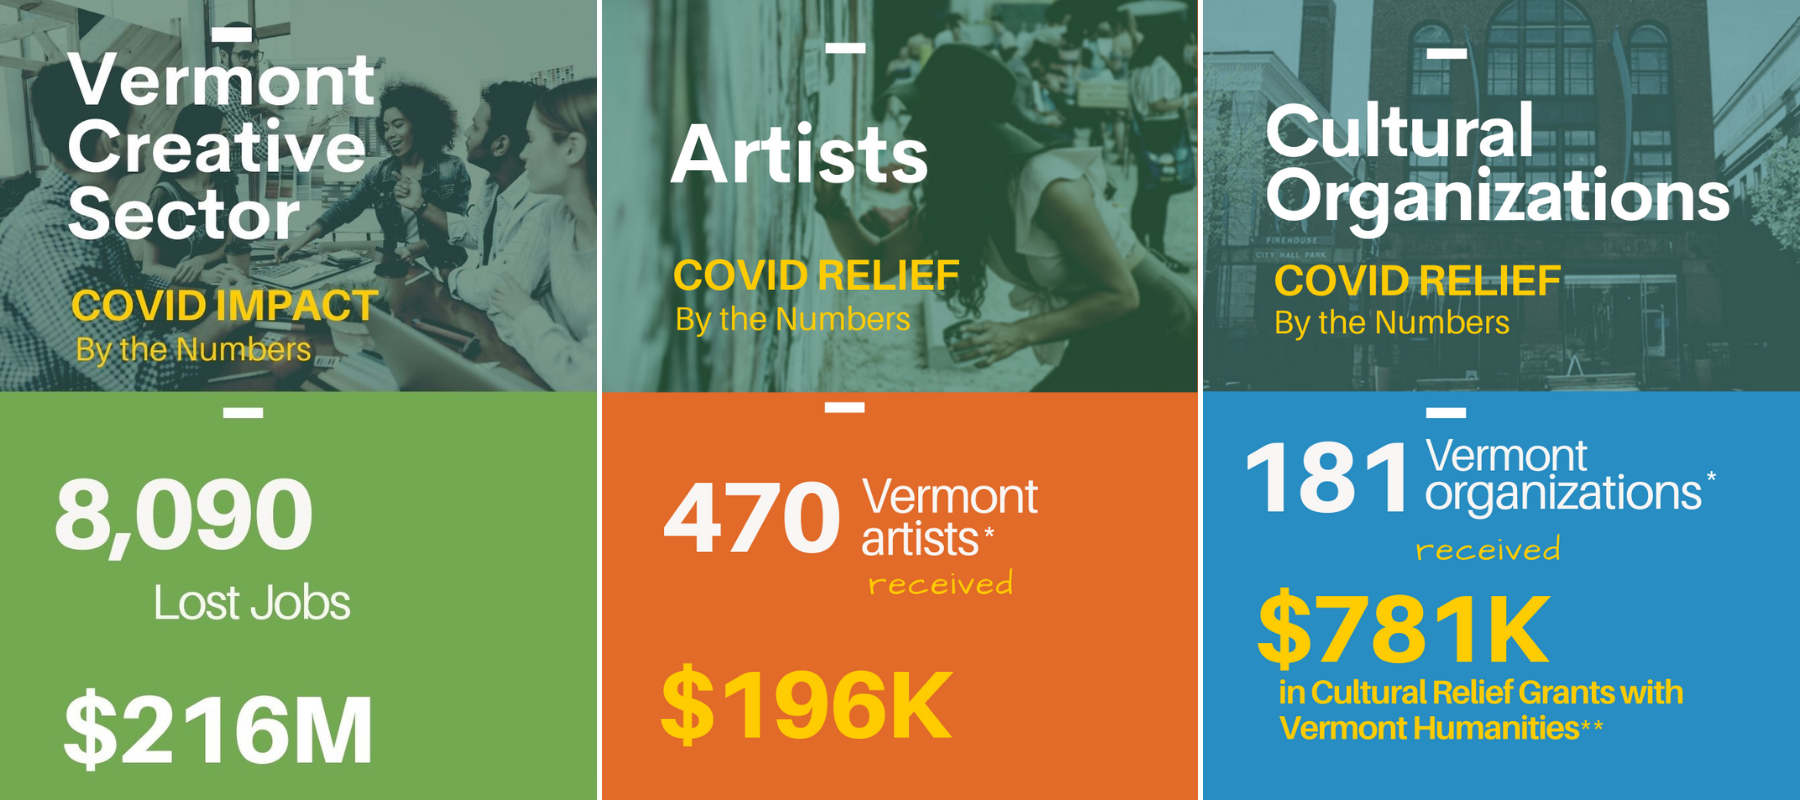 From April to July 2020 Vermont's creative sector lost over 8,000 jobs and over $200K in sales. Since the start of the pandemic, the Arts Council has delivered relief funds to 470 artists and 181 organizations.